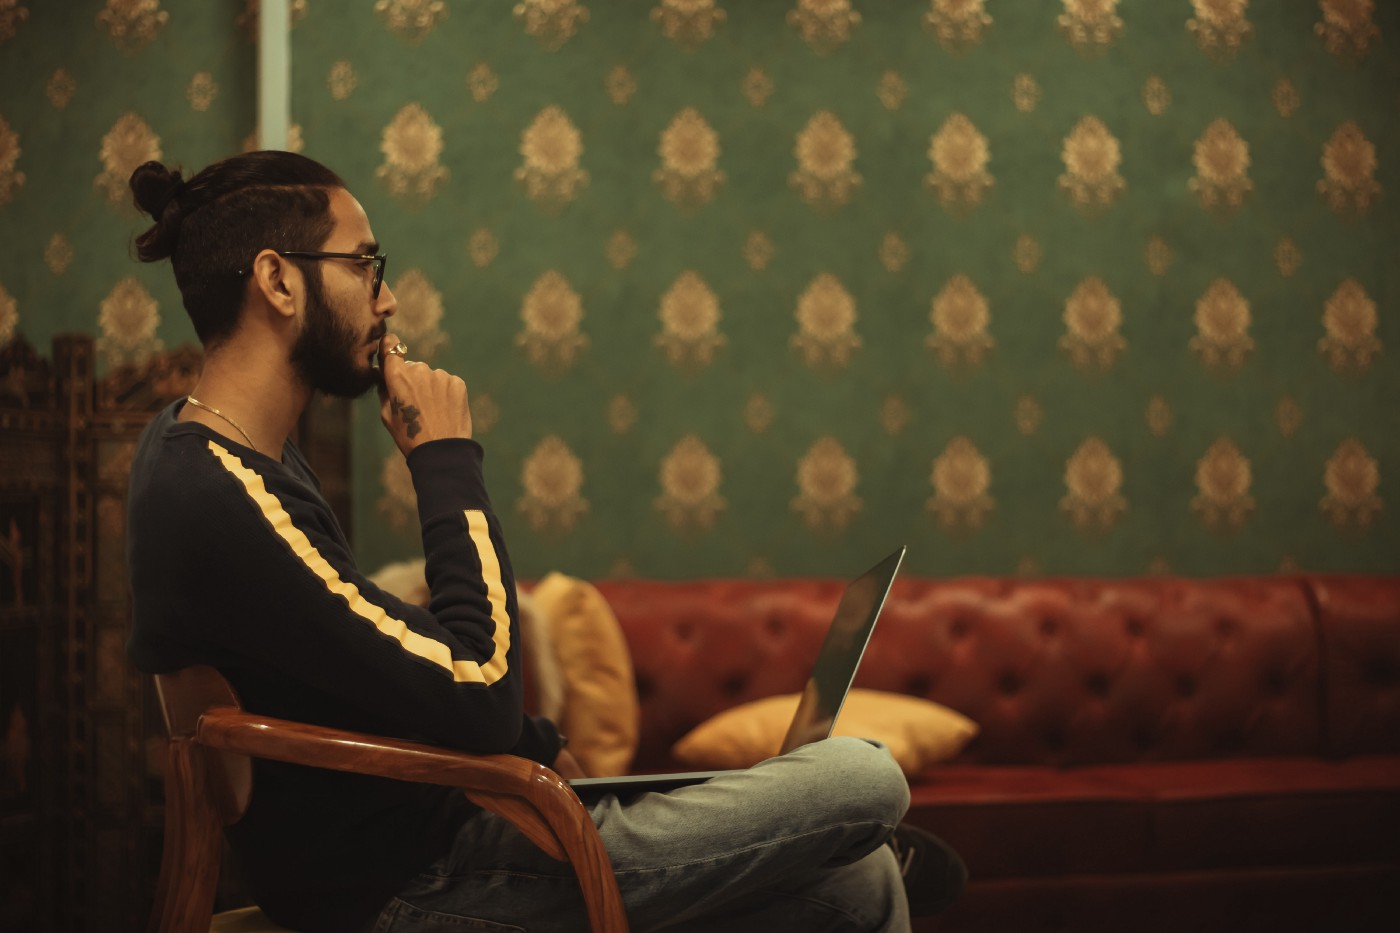 A man sitting on a chair working on his laptop